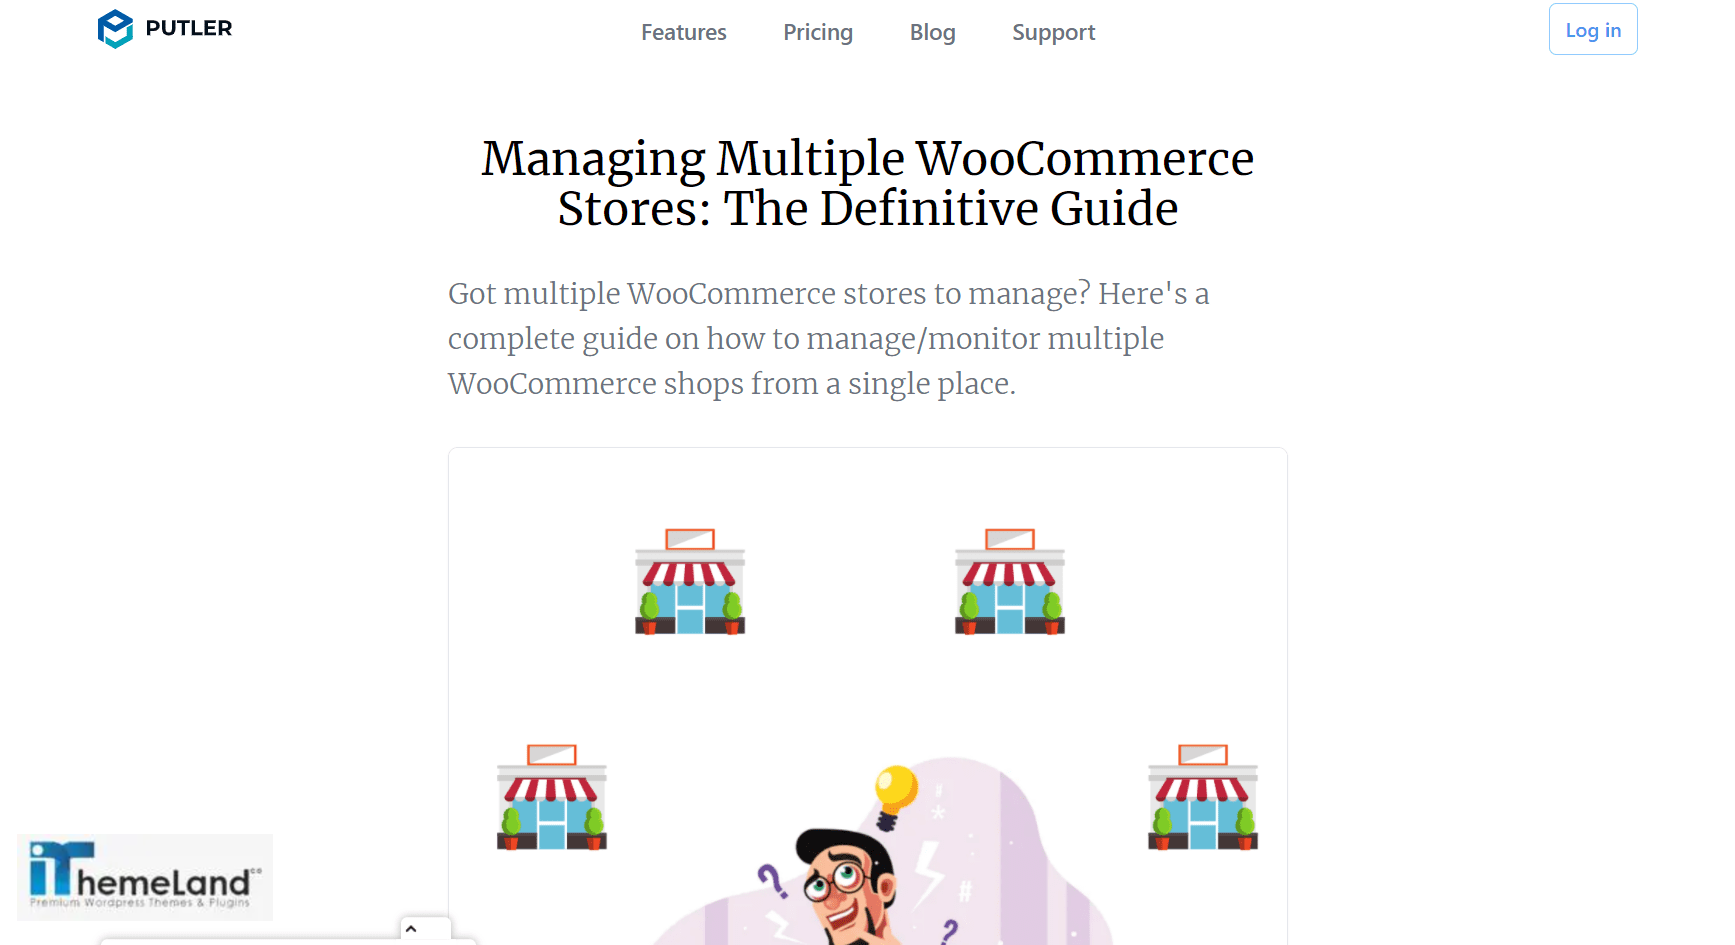 pluter plugin for managing multiple WooCommerce stores